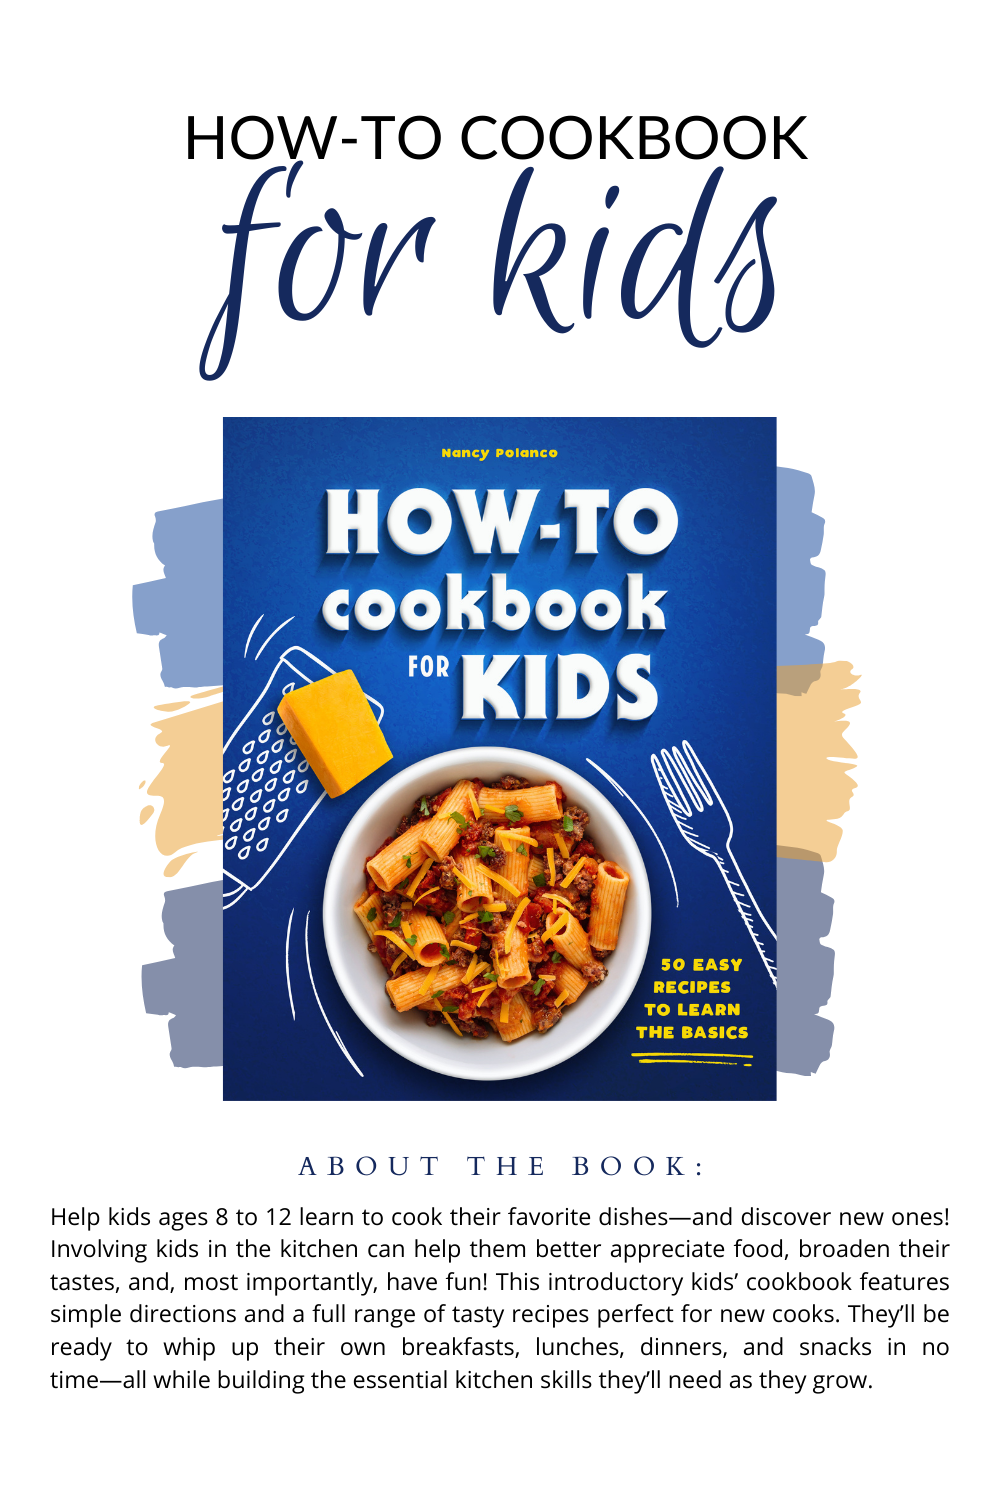 The new cookbook, How-To Cookbook for Kids is here! You'll find 50 easy recipes to learn the basics. Let's cook!